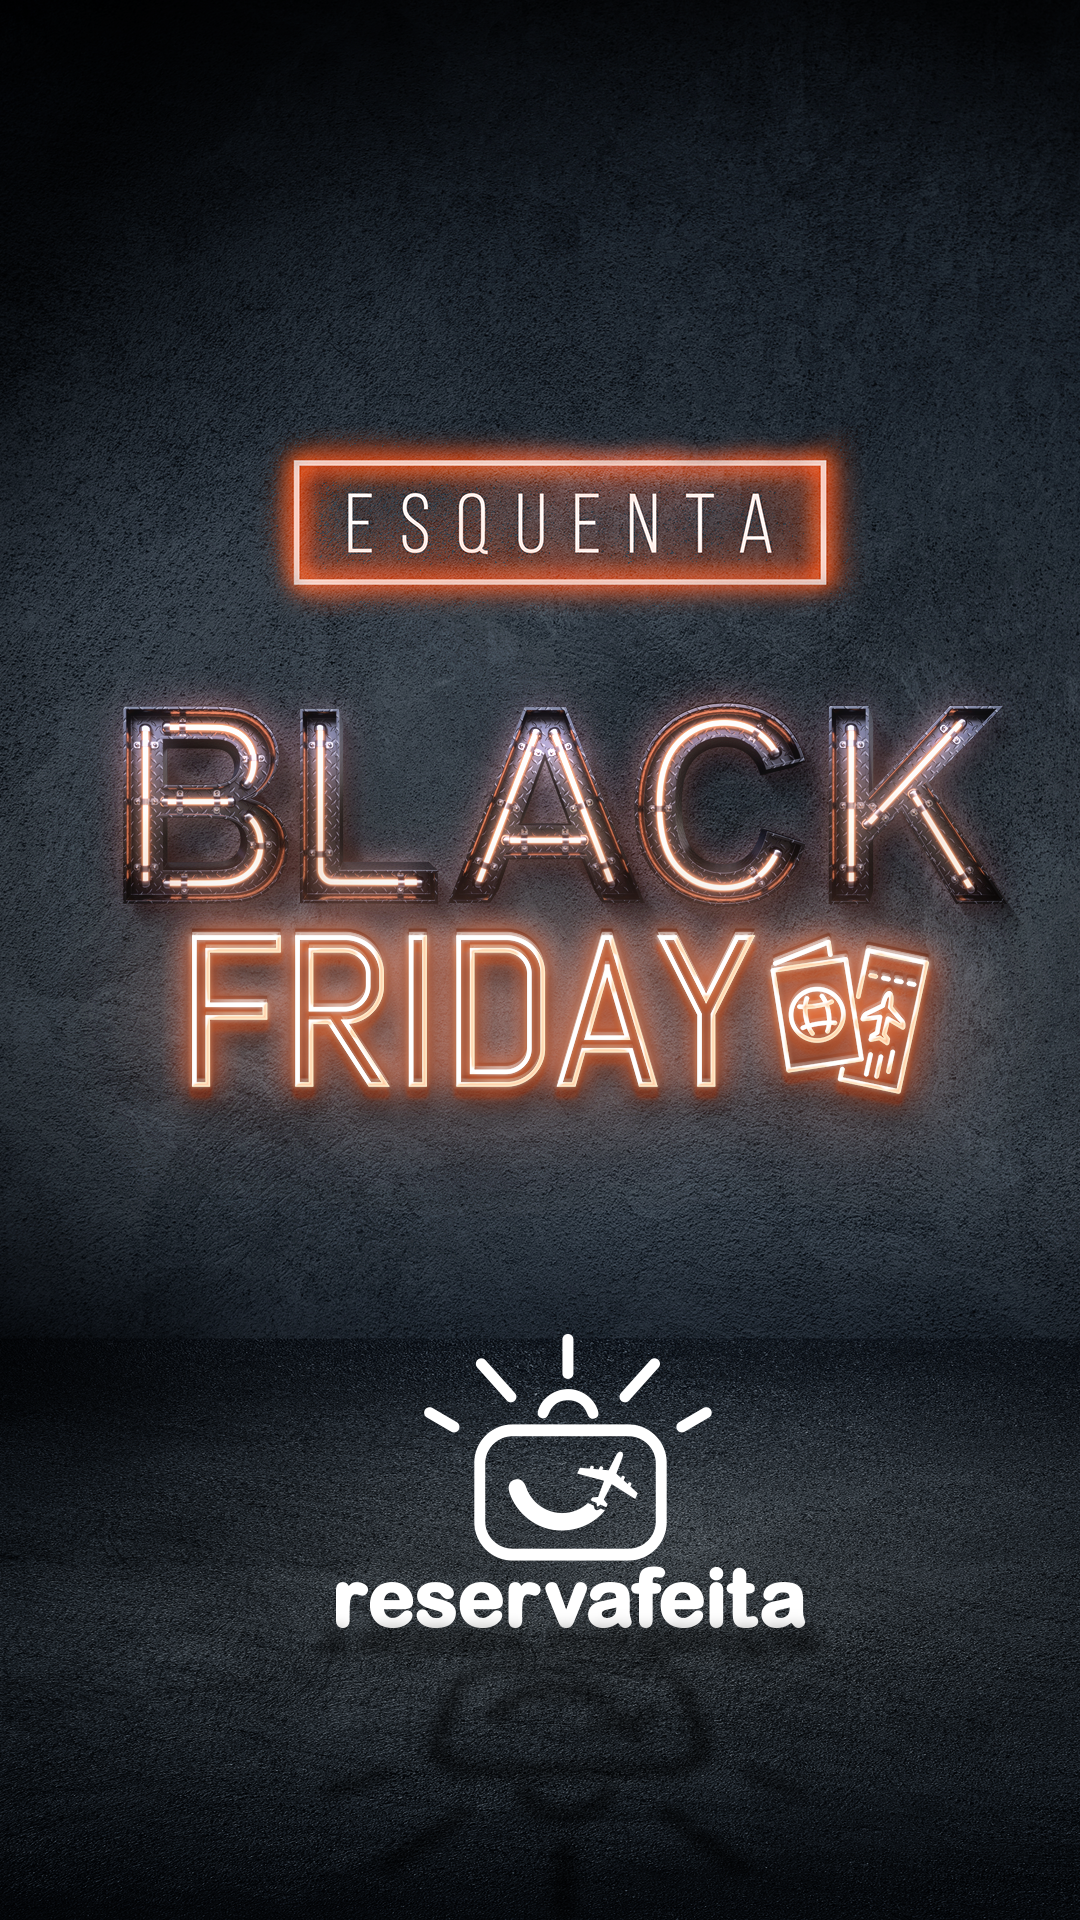 blackfriday_esquentastories